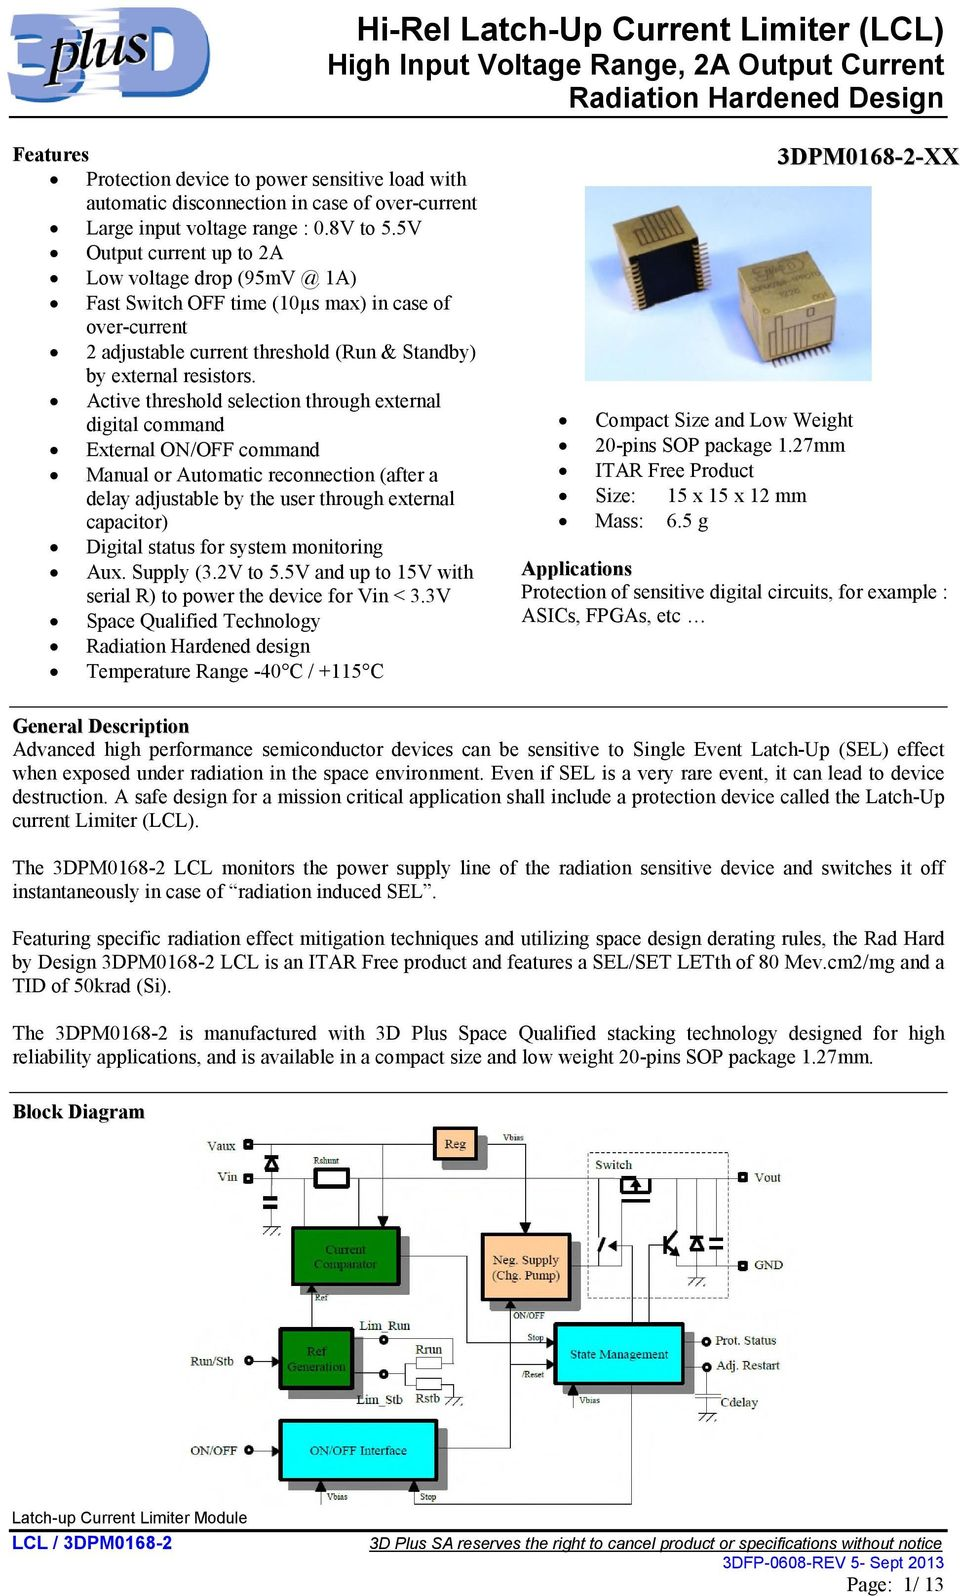 Hi Rel Latch Up Current Limiter Lcl High Input Voltage Range 2a Tda2050 Amplifier With Environmental Protection Active Threshold Selection Through External Digital Command On Off Manual Or Automatic Reconnection